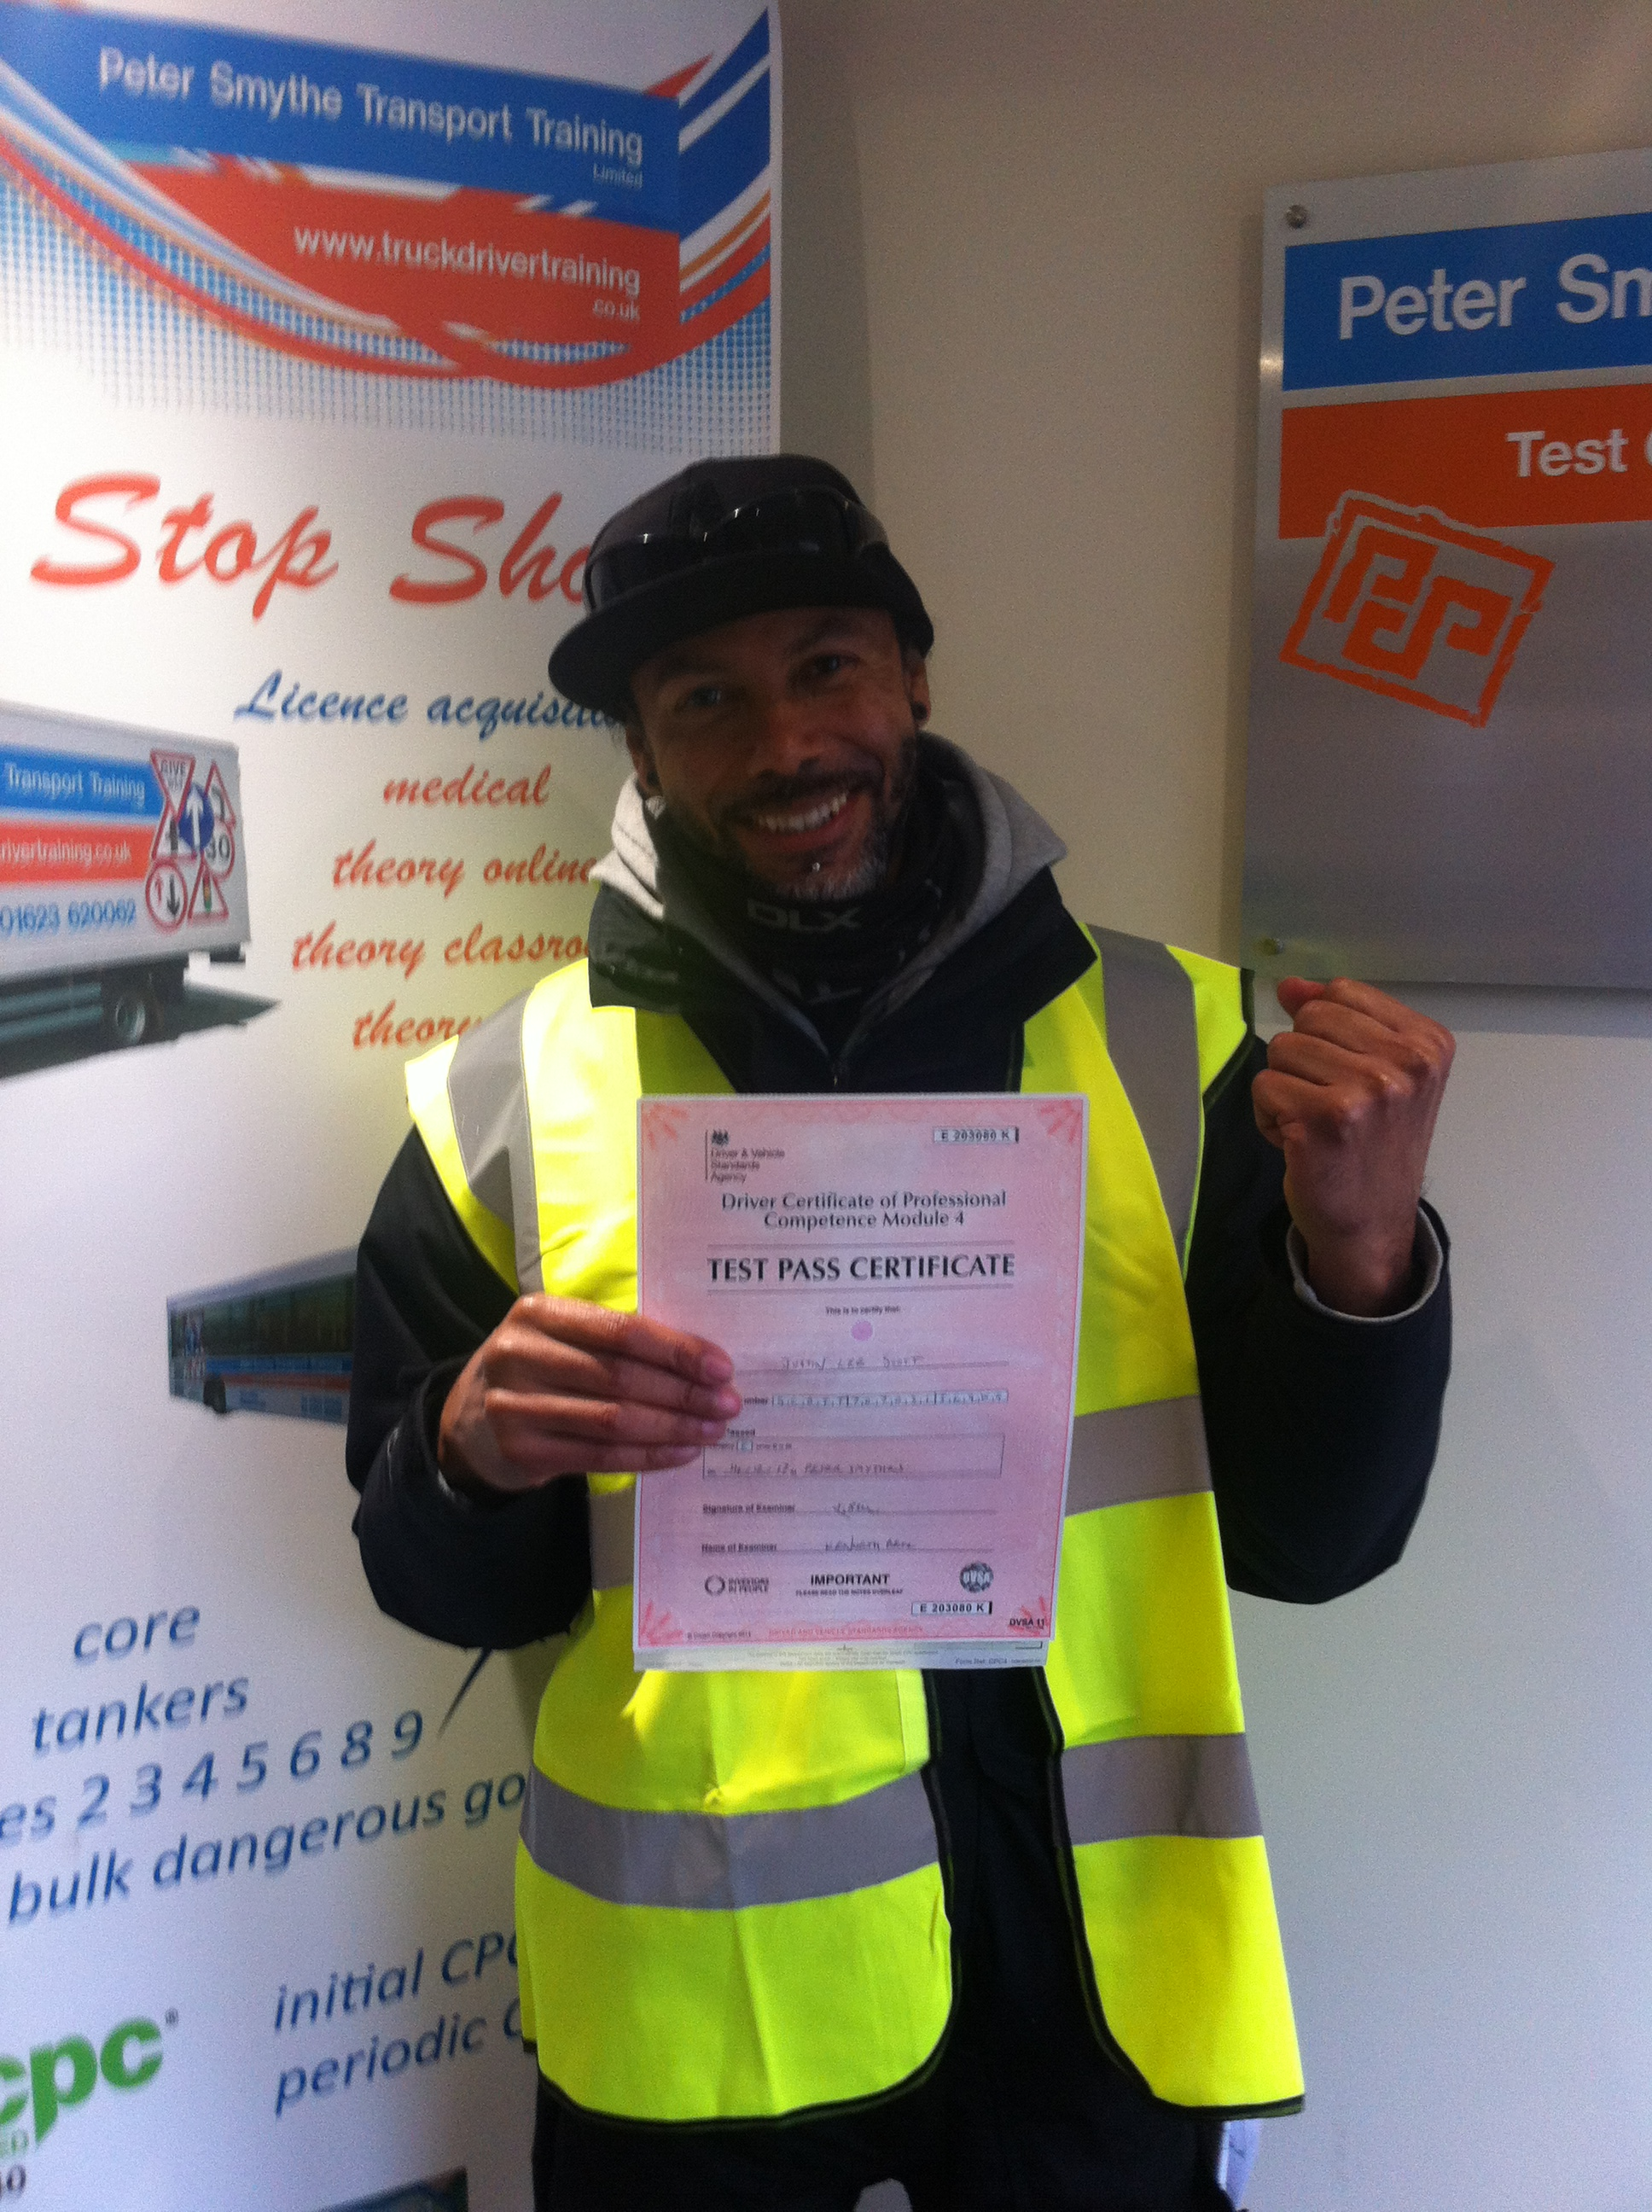 Justin Scott from Long Eaton passed CPC MOdule 4